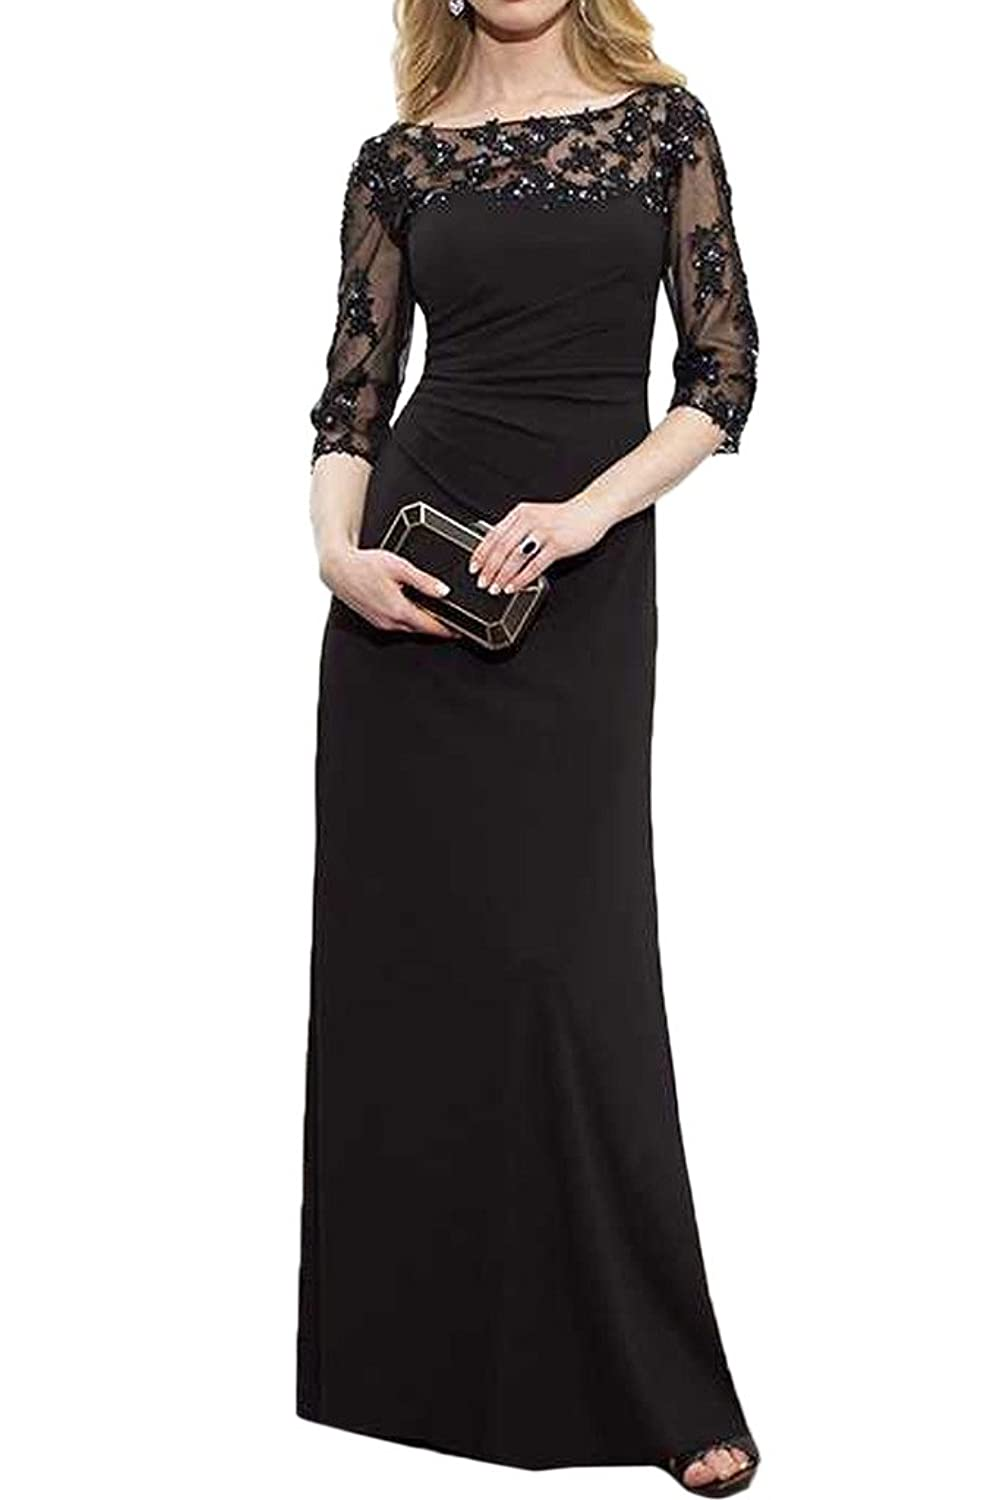 Gorgeous Bride Sheath Half Sleeves Mother of the Bride Evening Dresses Long